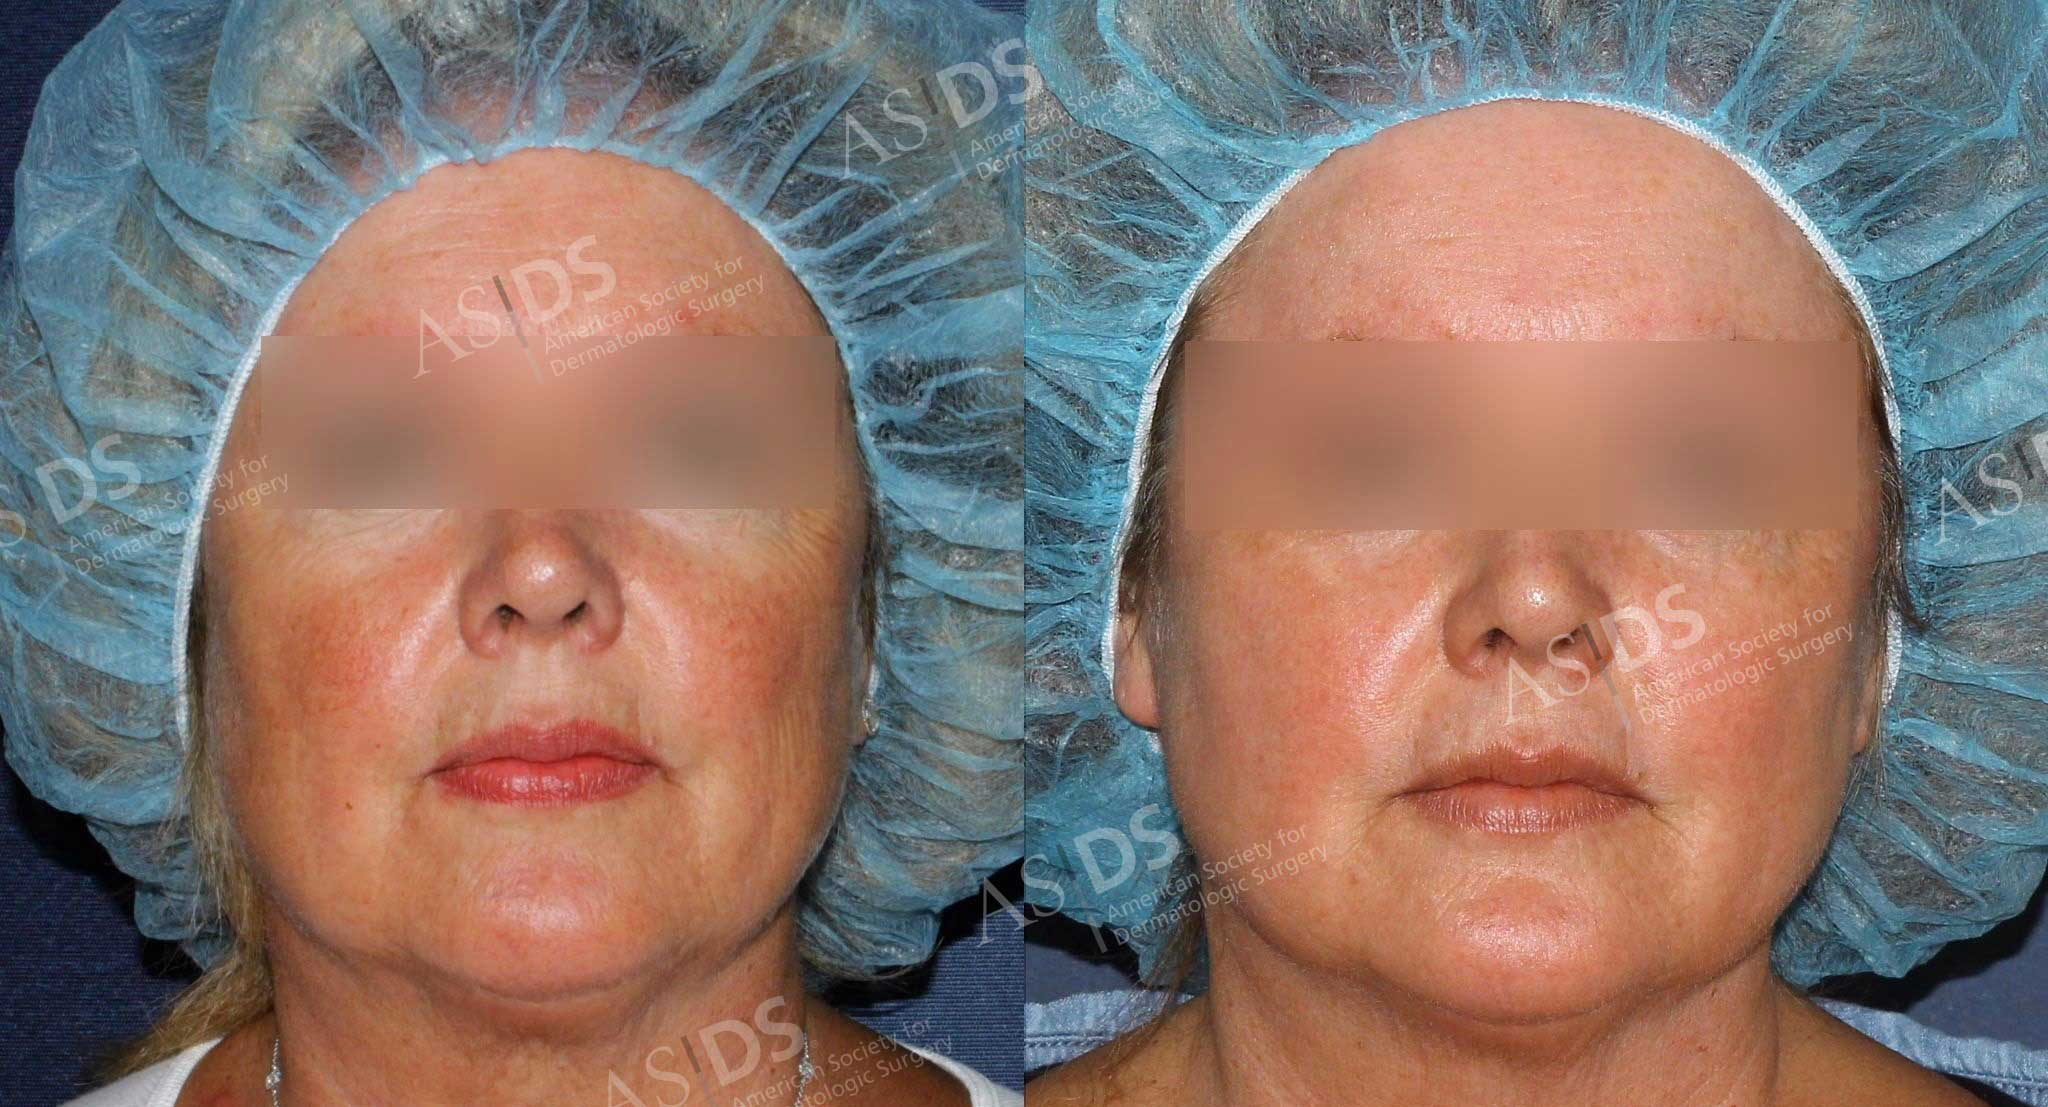 Before and after - IPL: face, rosacea, solar lentigenes, and photodamage